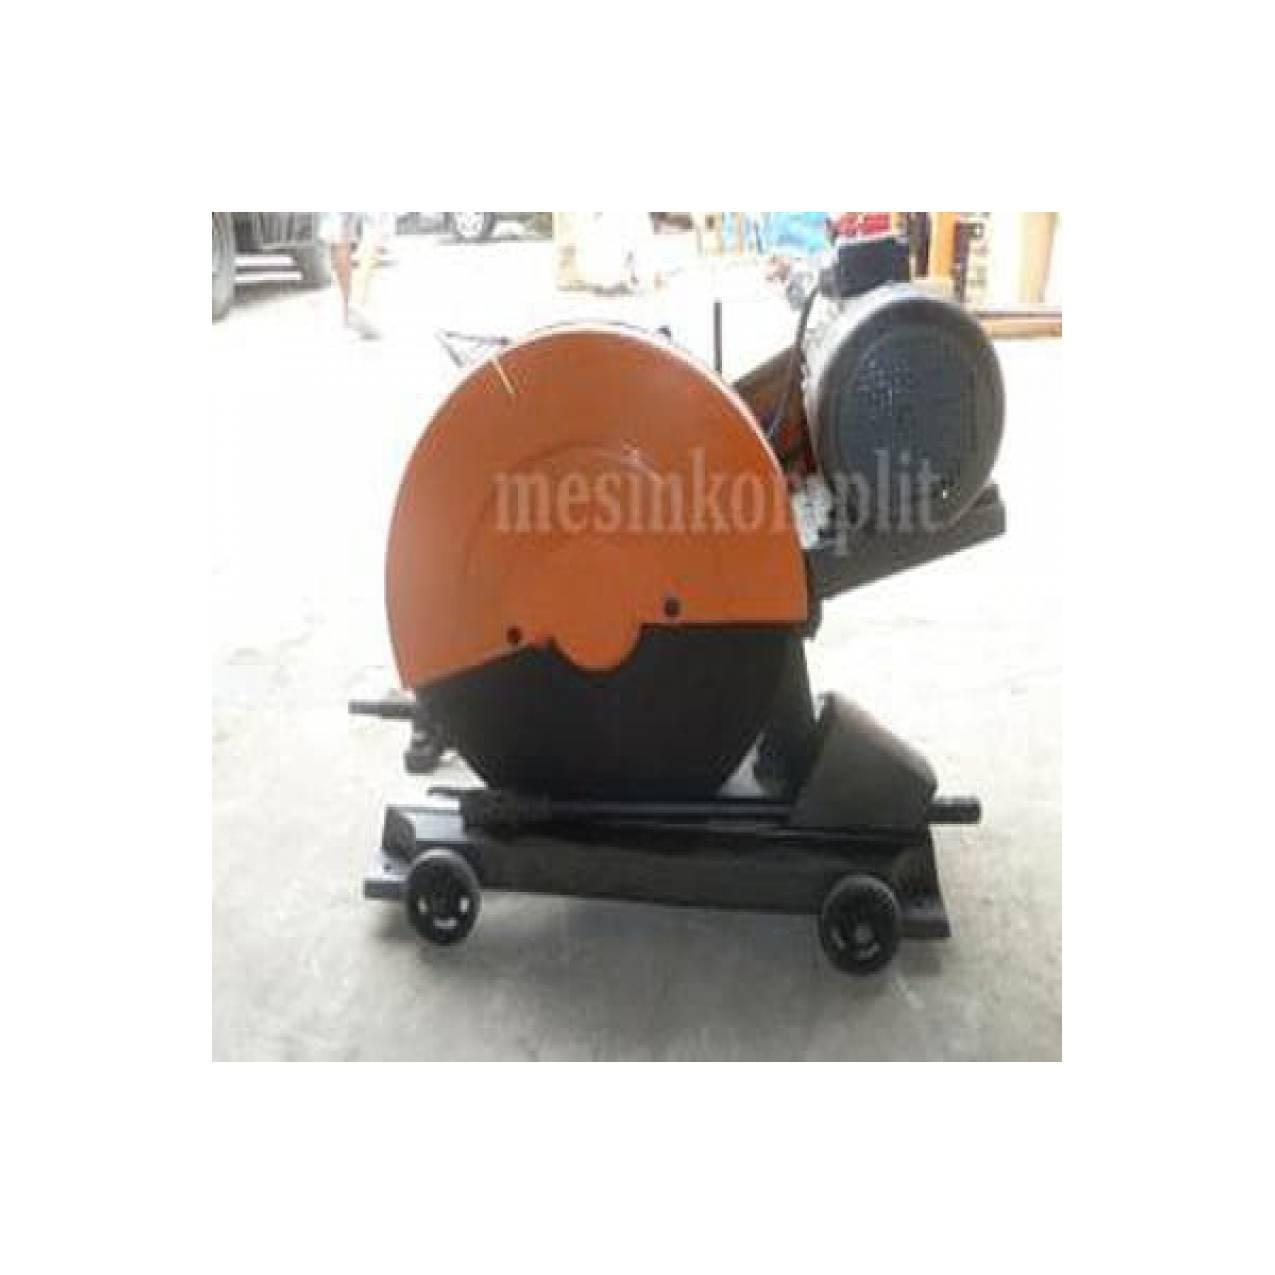 Buy Sell Cheapest Cut Off 16 Best Quality Product Deals Makita Mesin Potong Besi 2416s